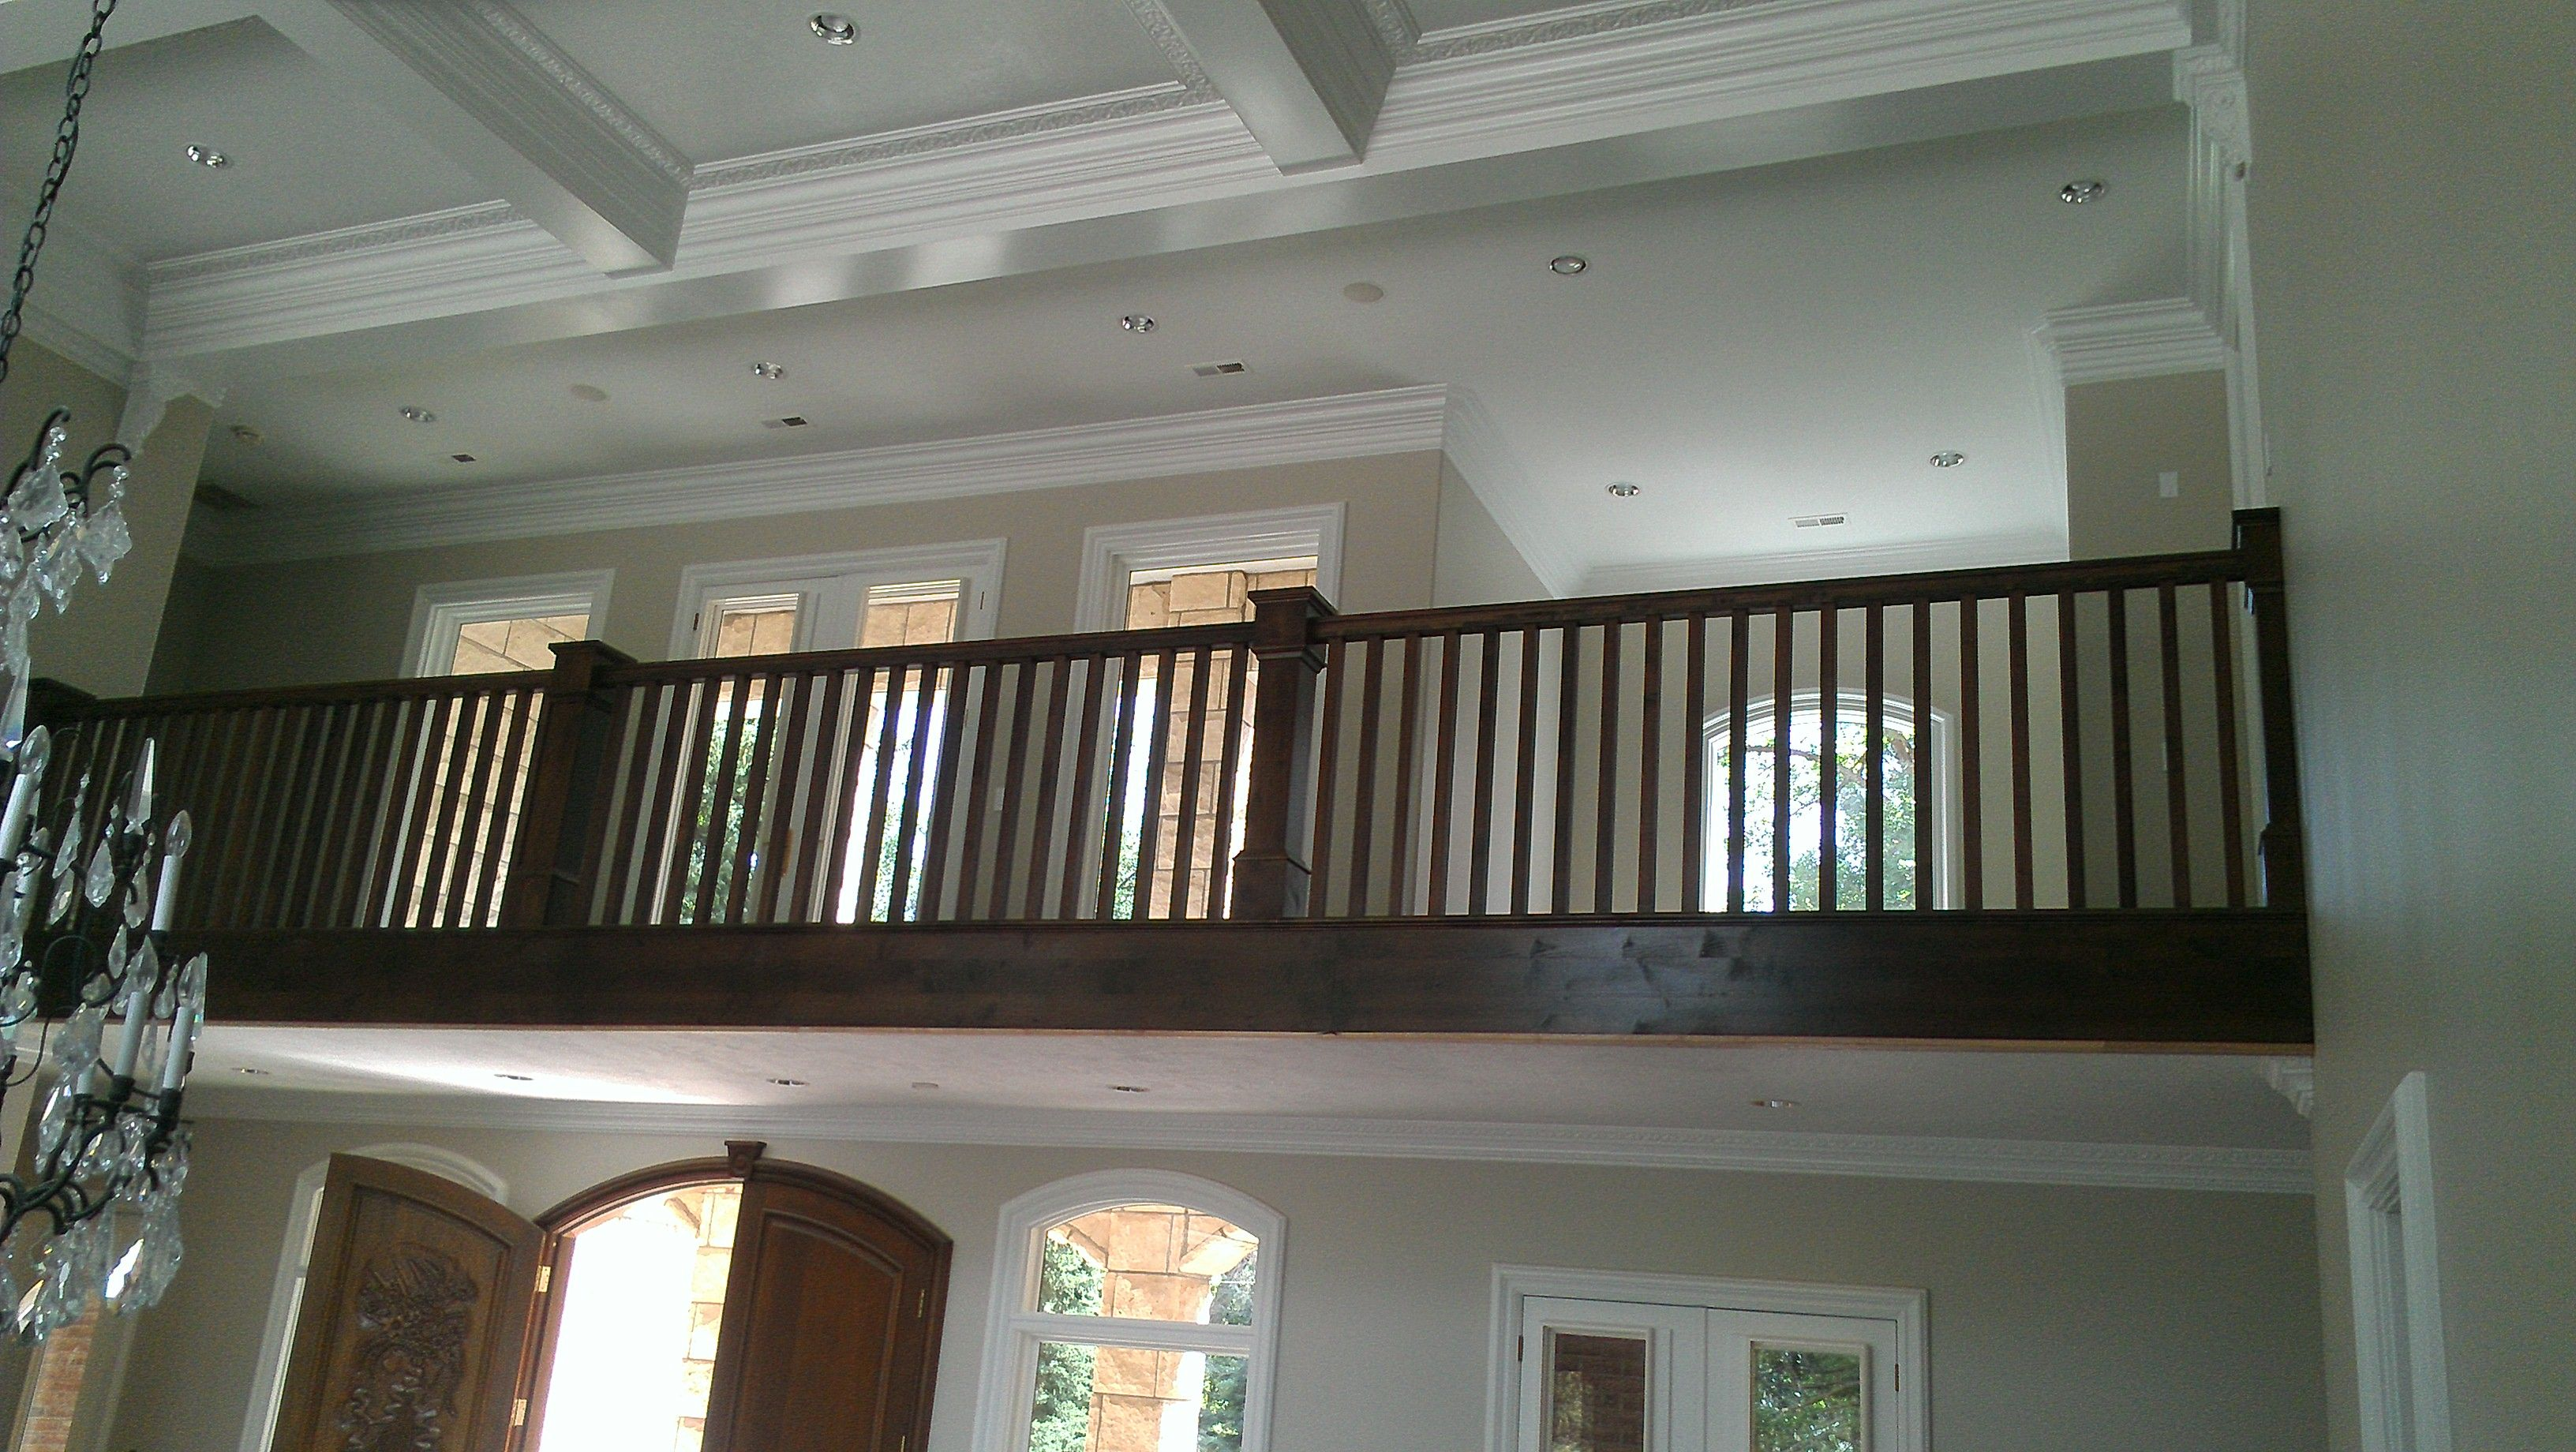 Craftsman style stair railing that apex carpentry built